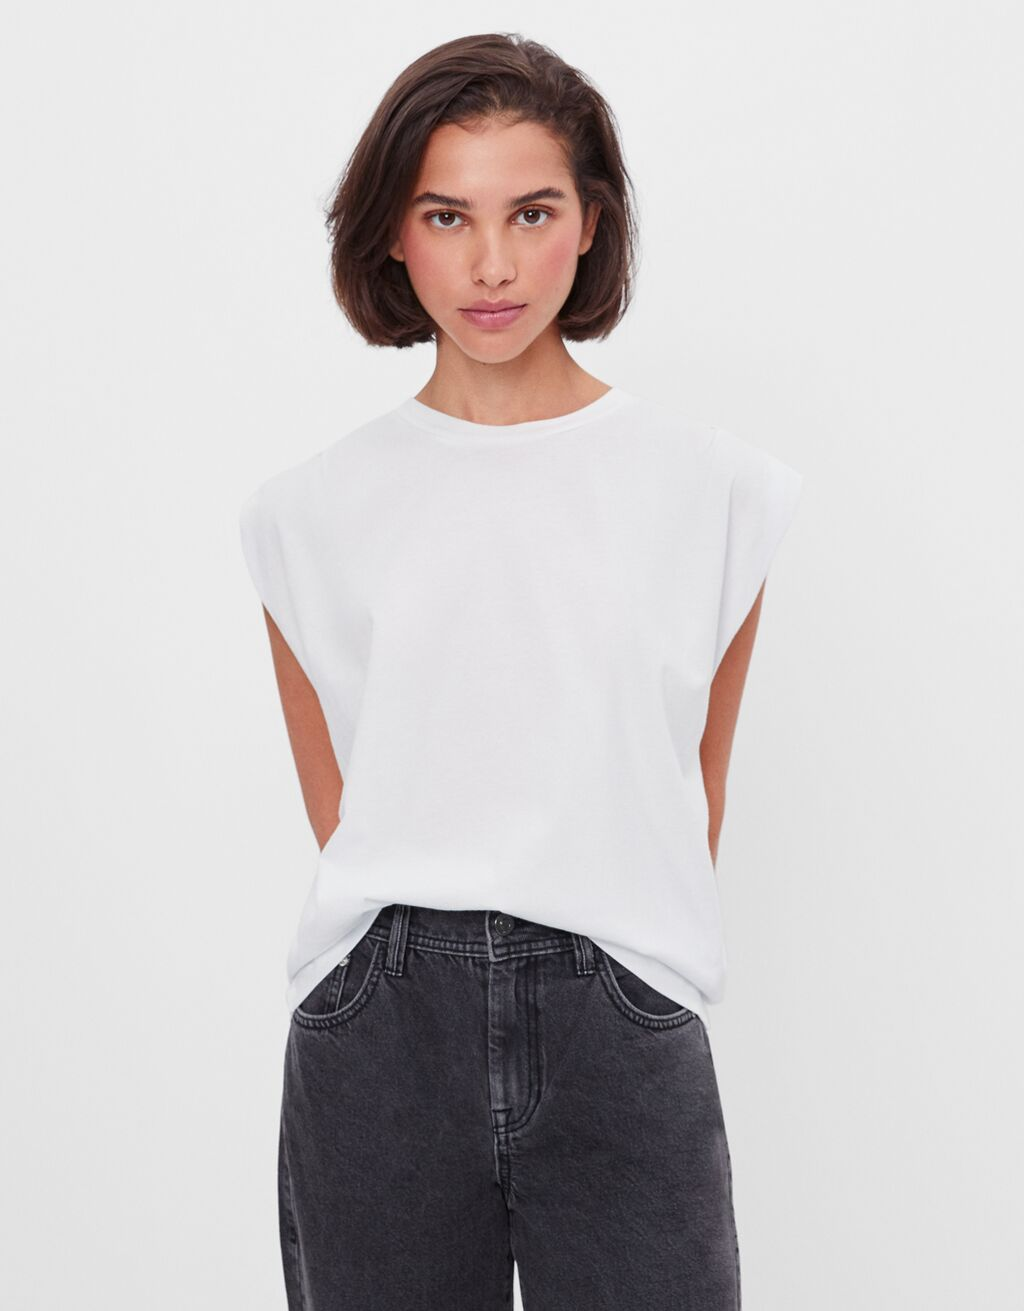 T-shirt with pleats along the shoulders